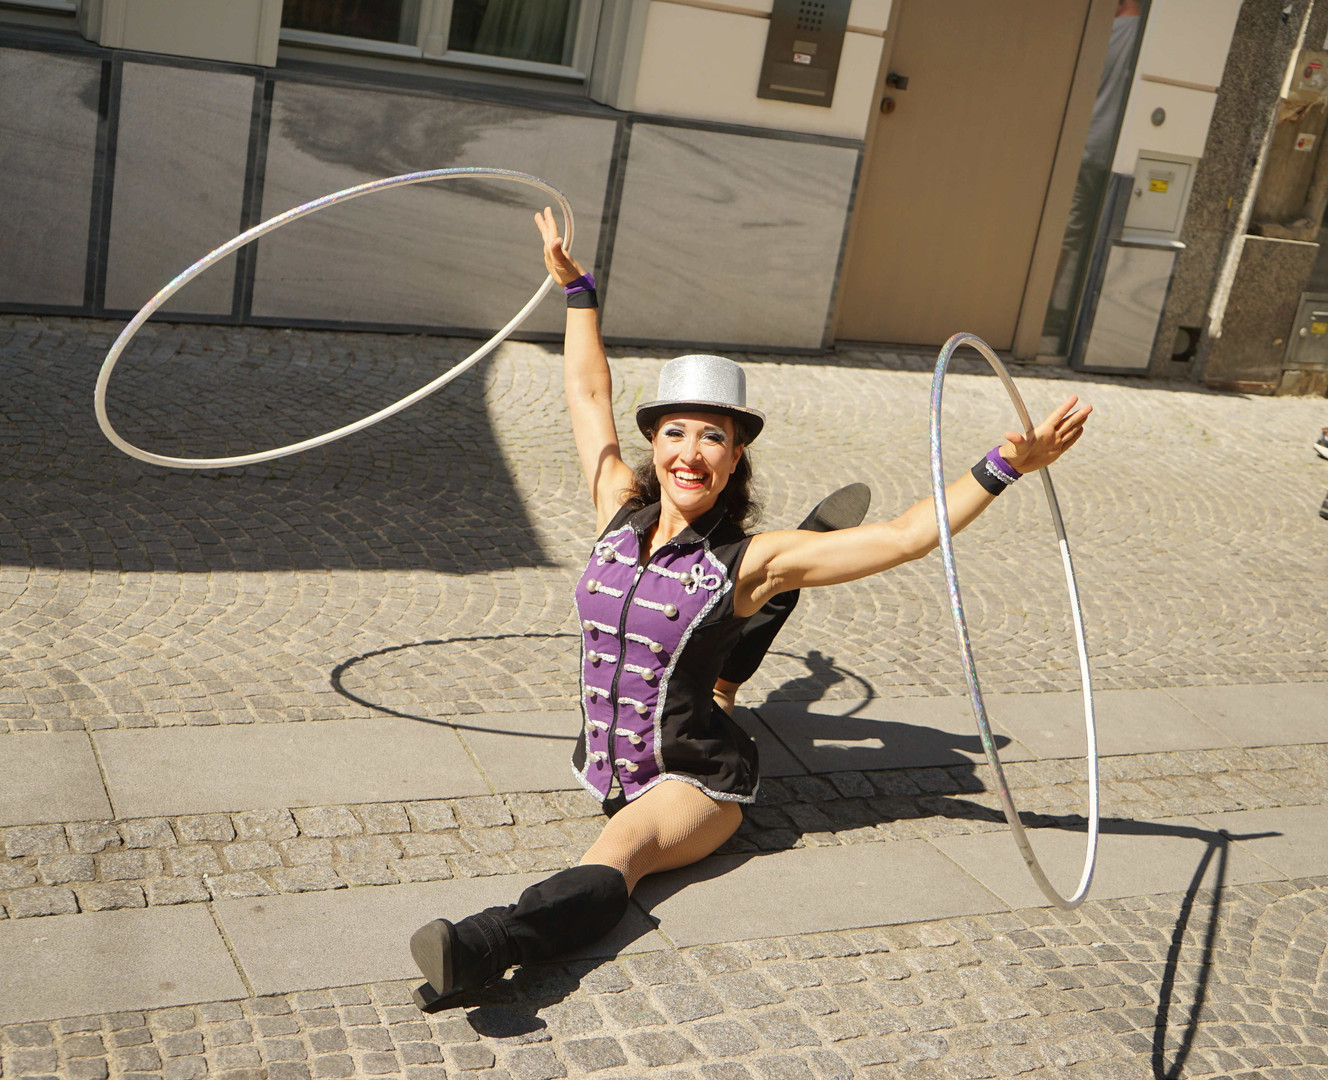 Walking-Act Hula Hoop